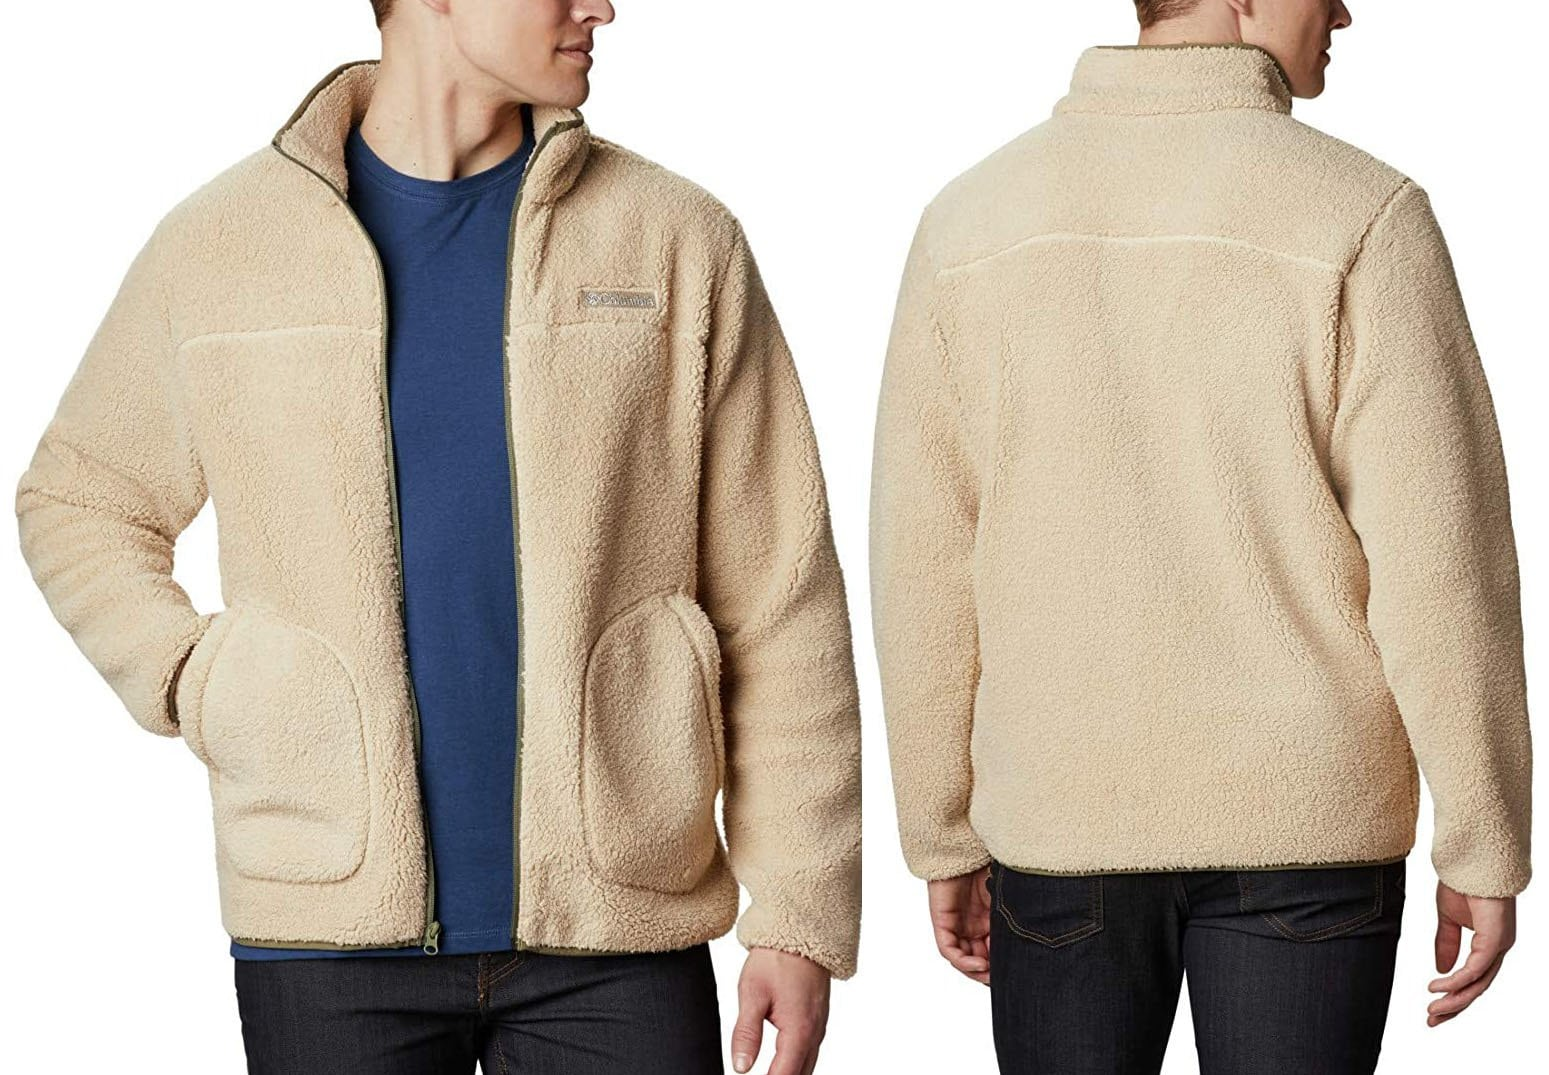 Columbia's Rugged Ridge II features lightweight Sherpa fleece, making it a perfect everyday go-to jacket